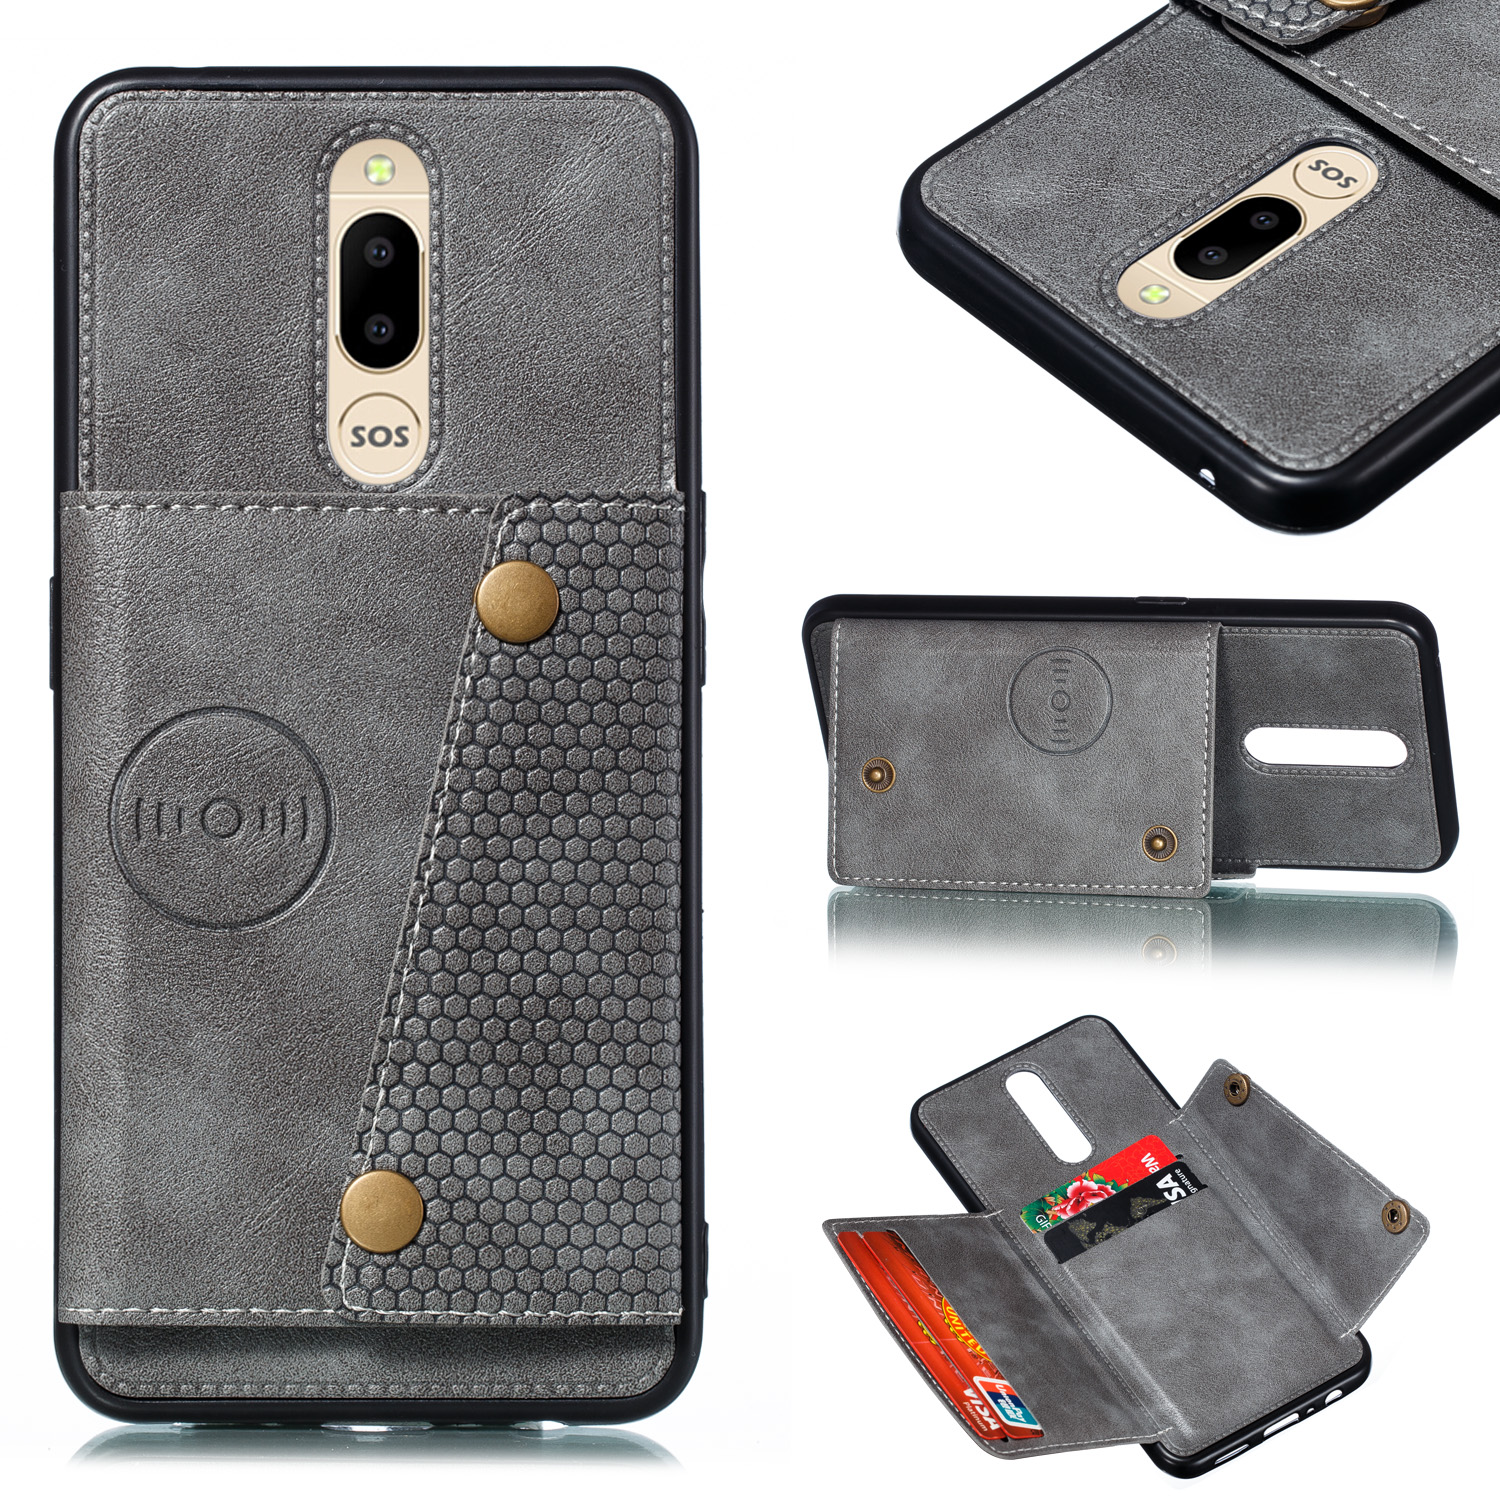 For OPPO F11 PU Leather Flip Stand Shockproof Cell Phone Cover Double Buckle Anti-dust Case With Card Slots Pocket gray